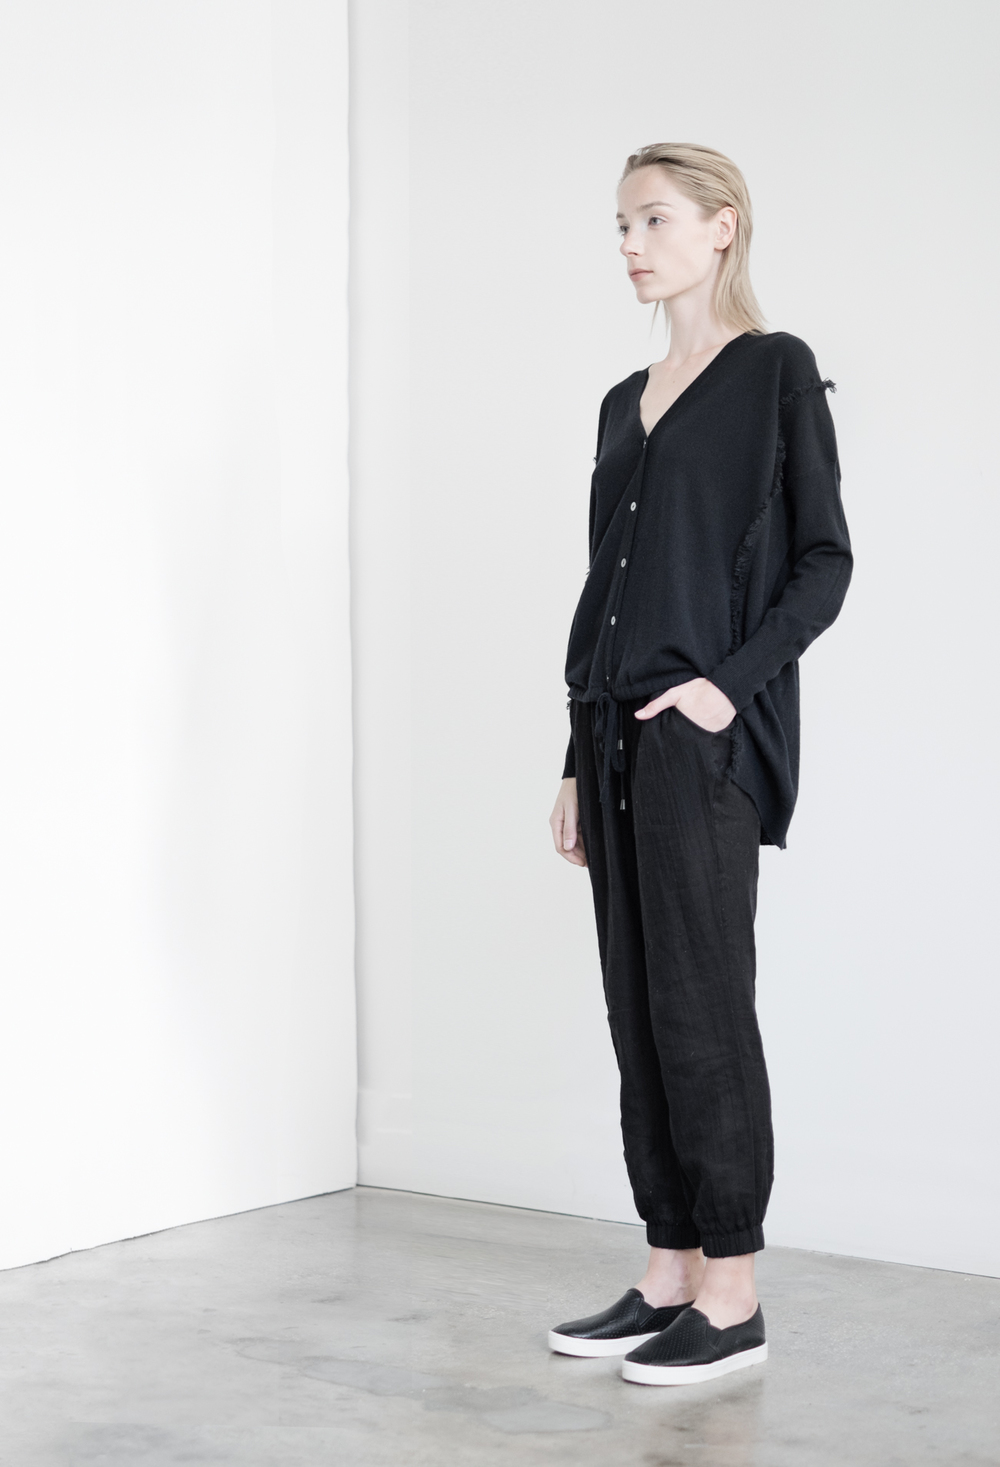 LOOK 48   TOP:   2201  / Noir  -     Vee cardigan with ruched front and waist in fine gauge cashmere.   BOTTOM:   2290  / Noir  -   Jogger pants in 100% Cotton woven dbl. layer gauze.